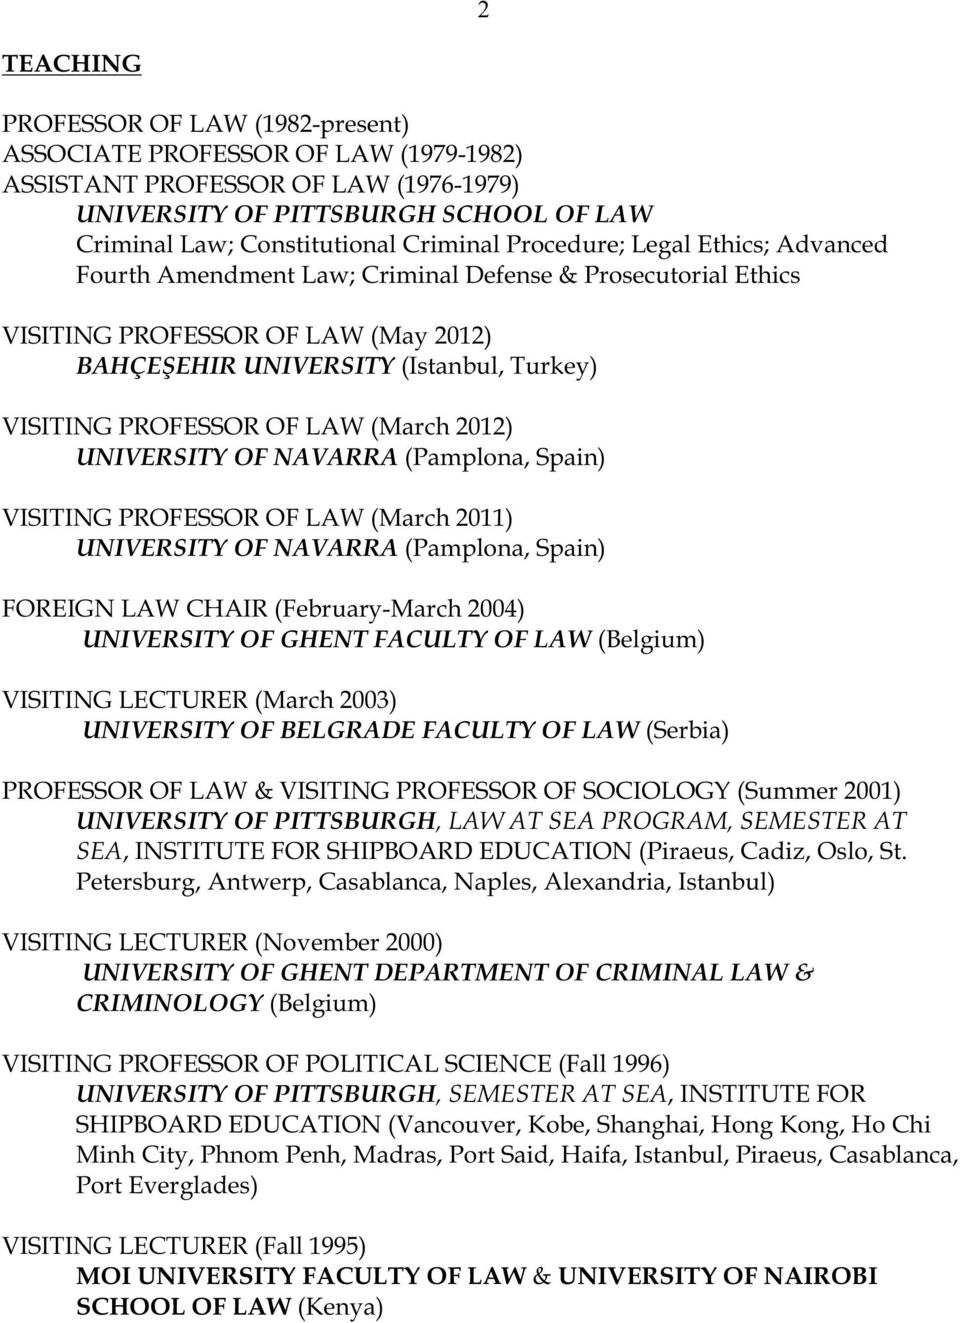 (March 2012) UNIVERSITY OF NAVARRA (Pamplona, Spain) VISITING PROFESSOR OF LAW (March 2011) UNIVERSITY OF NAVARRA (Pamplona, Spain) FOREIGN LAW CHAIR (February-March 2004) UNIVERSITY OF GHENT FACULTY